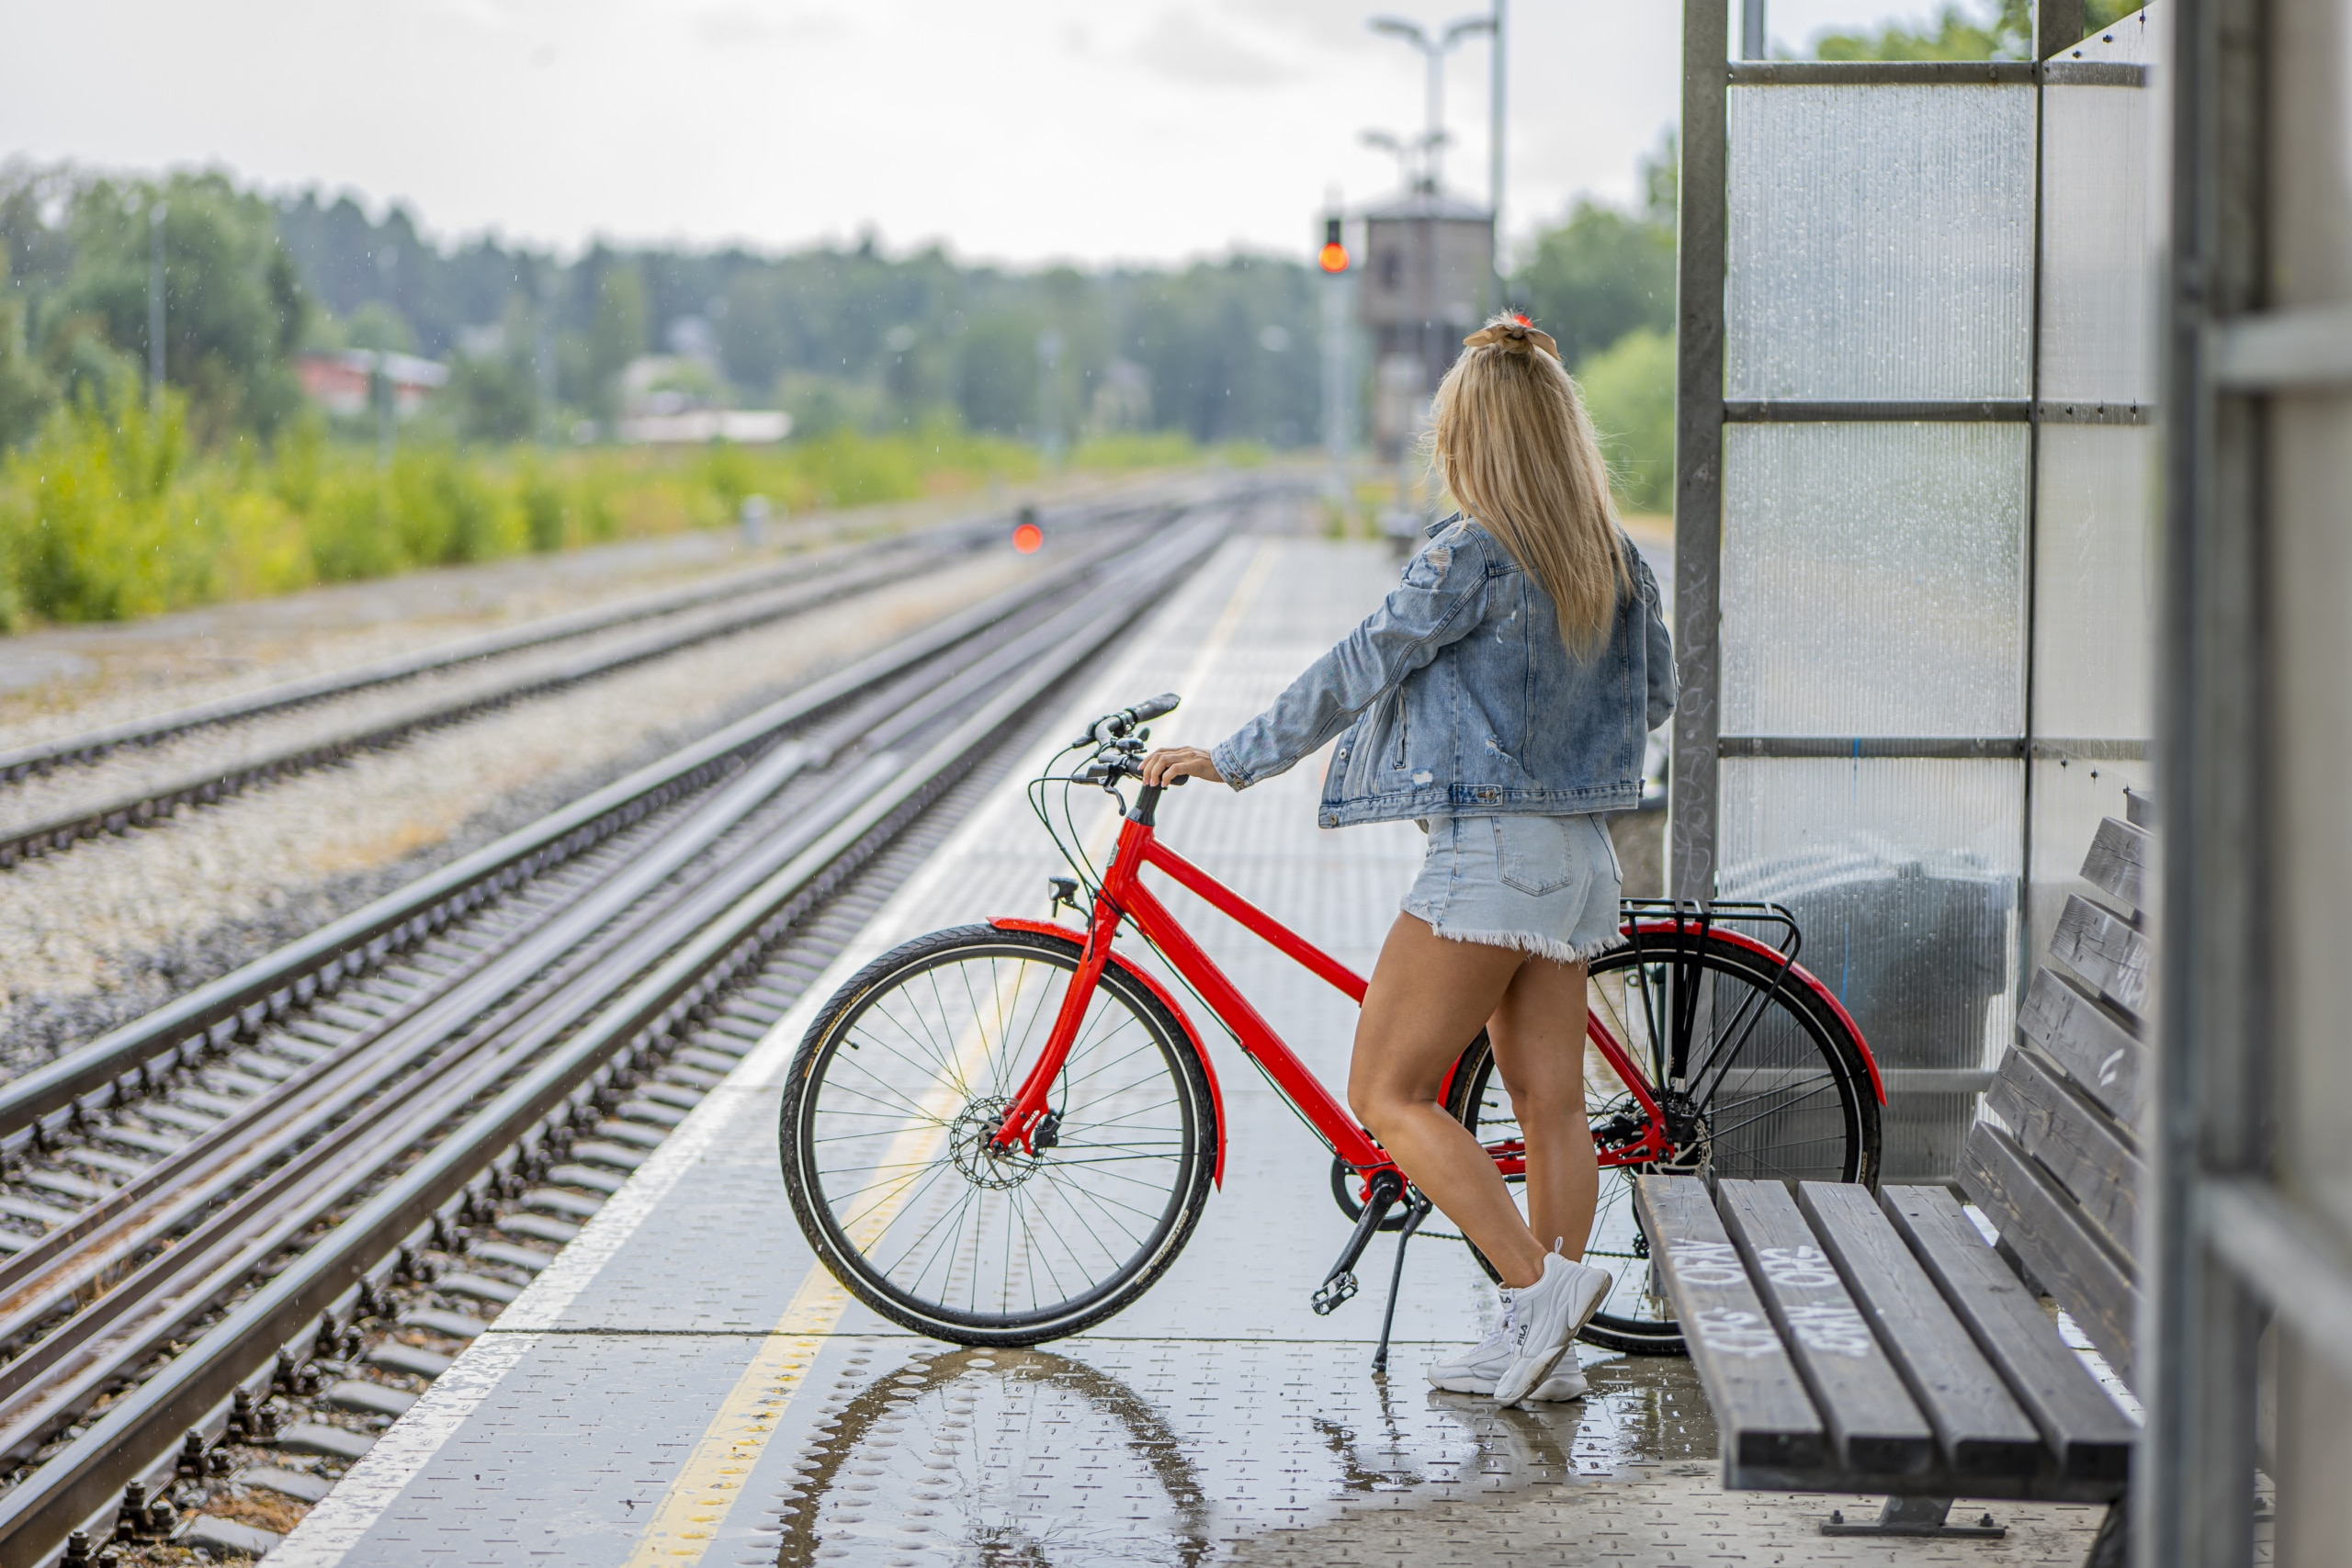 Smart Bike Parking Provides Cyclists Ease and Convenience for Daily Commute